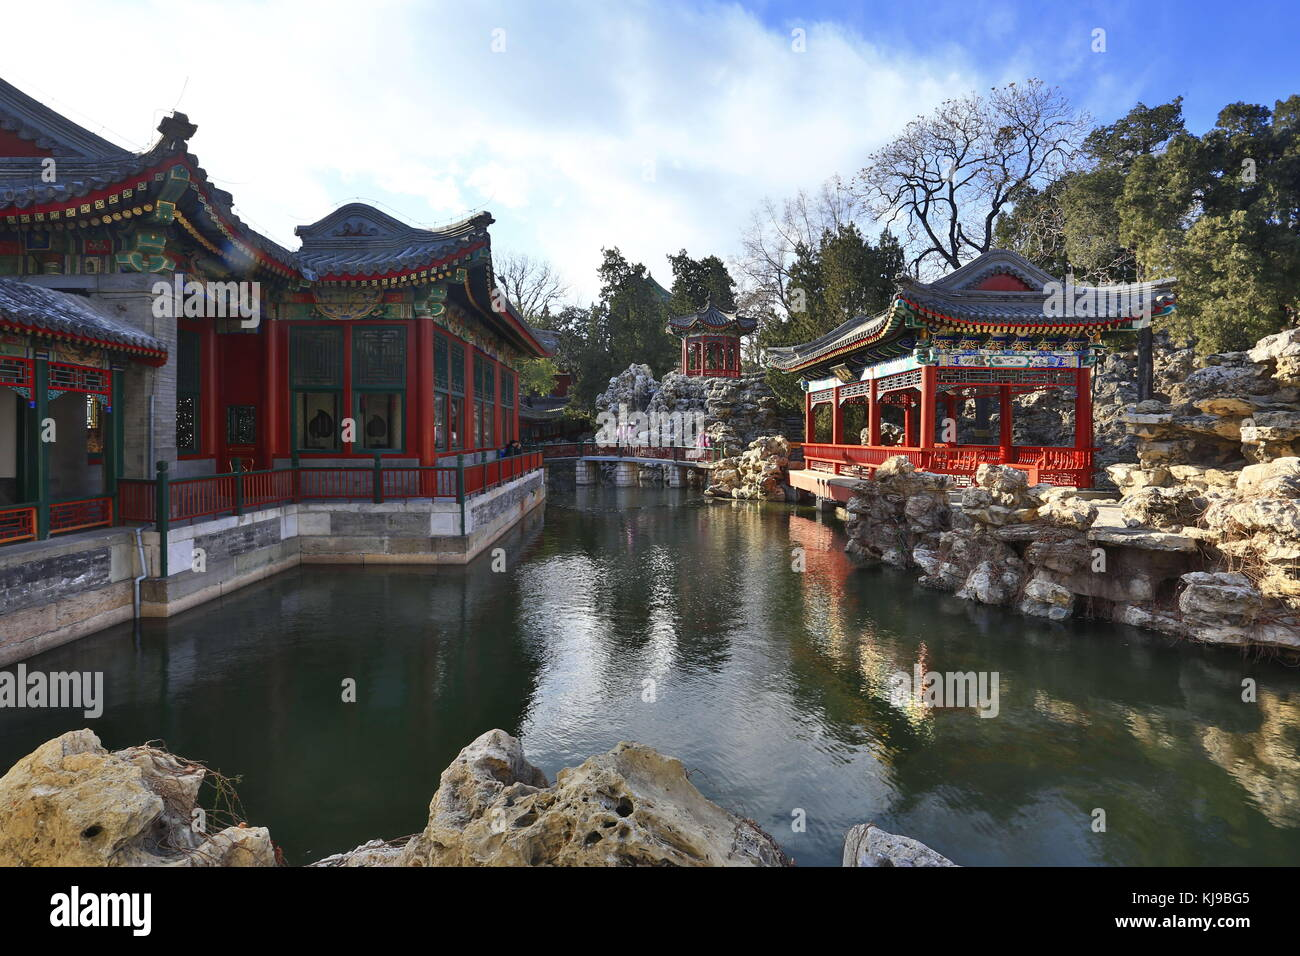 Beijing, China. 23rd Nov, 2017. (EDITORIAL USE ONLY. CHINA OUT) .Beihai Park is a public park and former imperial - Stock Image